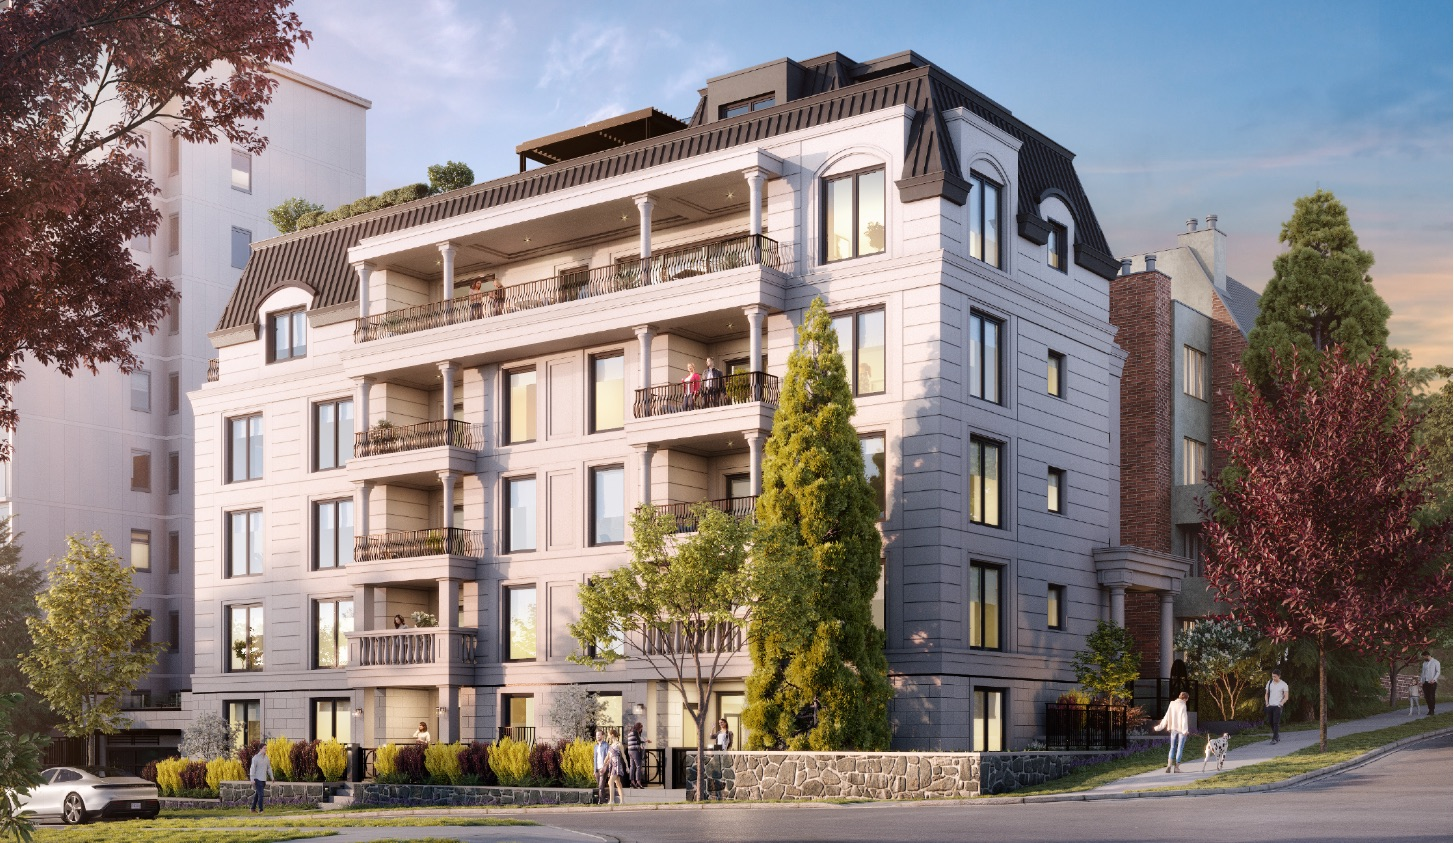 1289 Nicola By Dimex Group – Prices, Plans, Availability